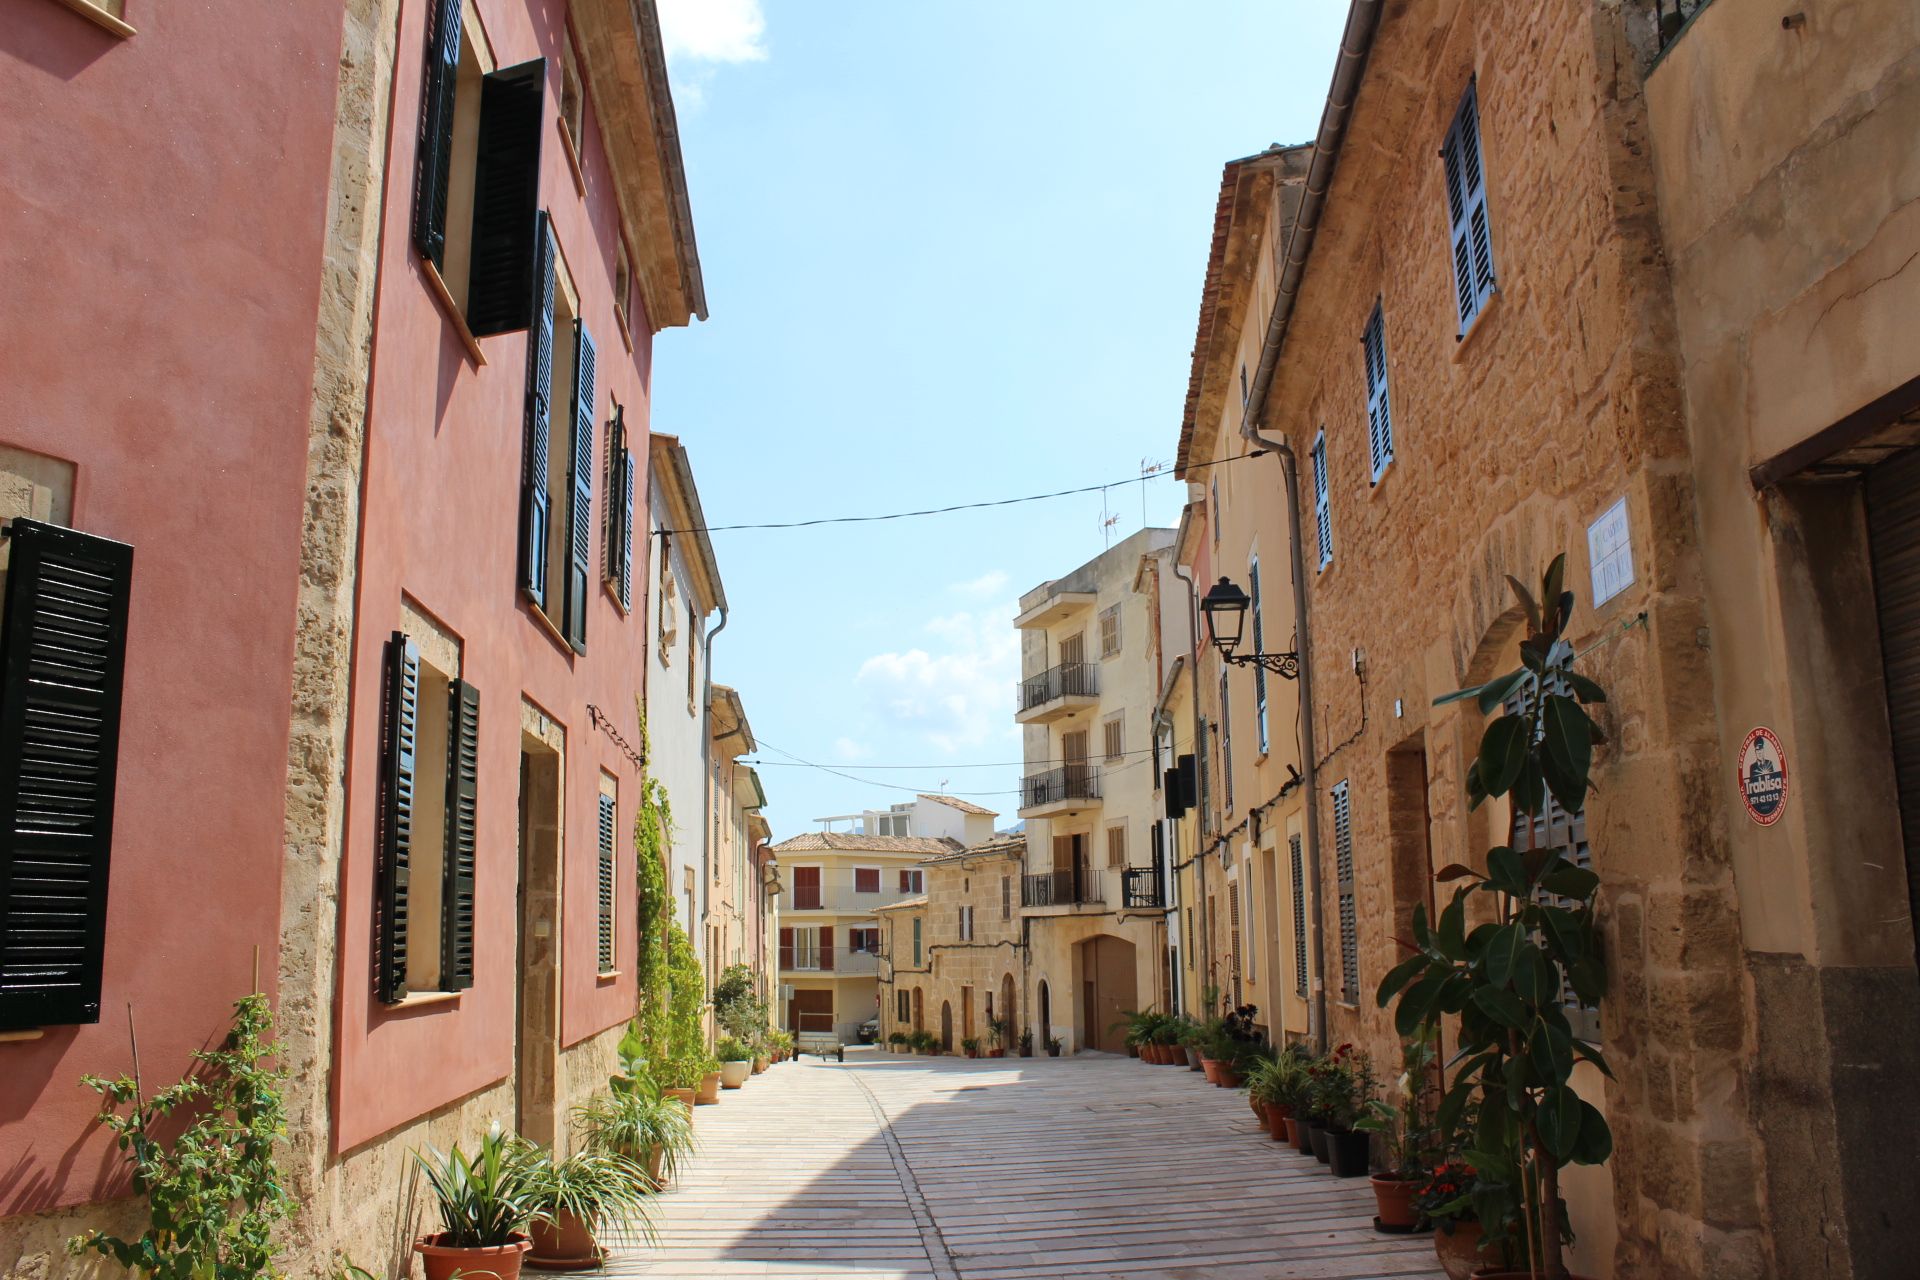 7) Go shopping in Old Town Alcudia - You can park outside the walled town, and wander the streets inside for bargains. Plenty of great lunch/drinks stops too.